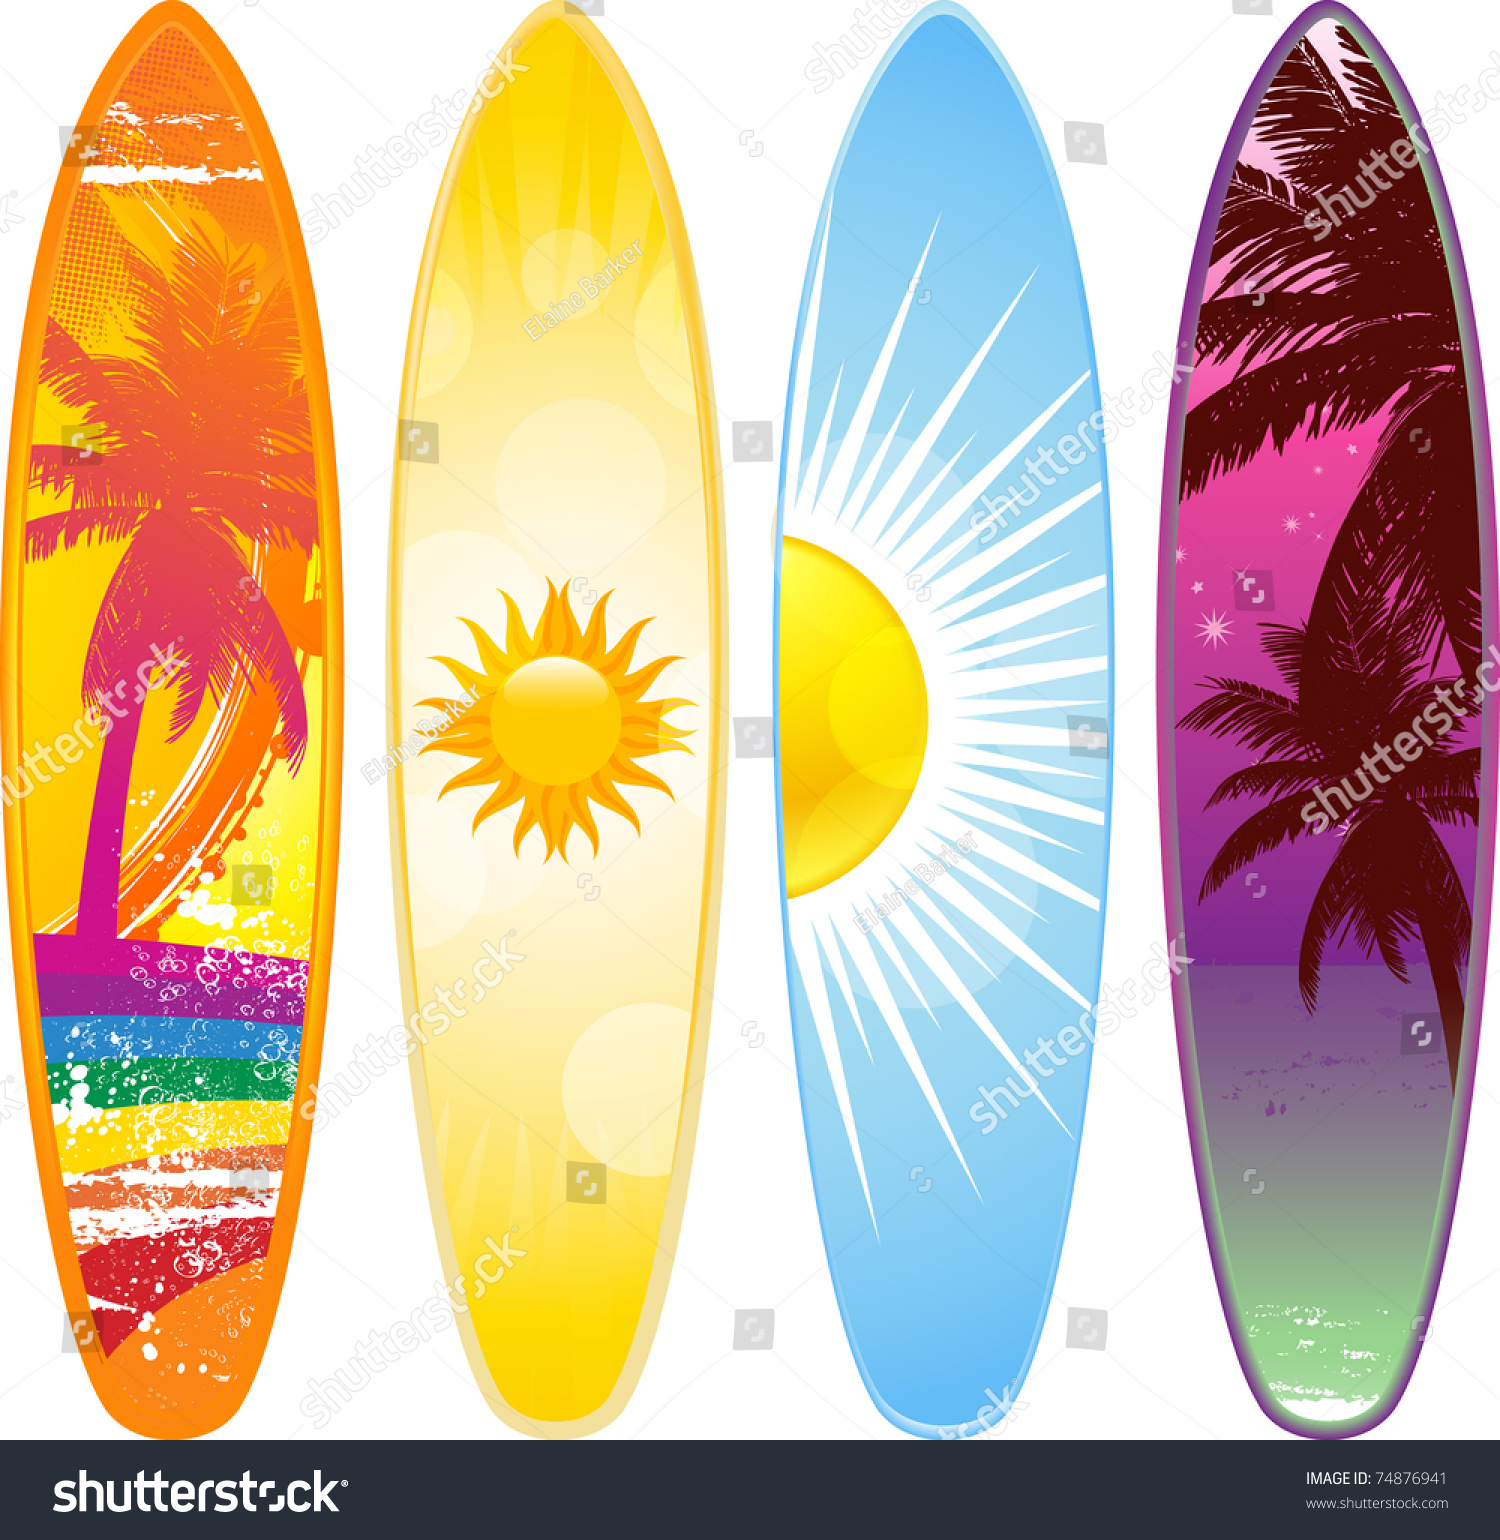 2019 year style- Designs Surfboard pictures